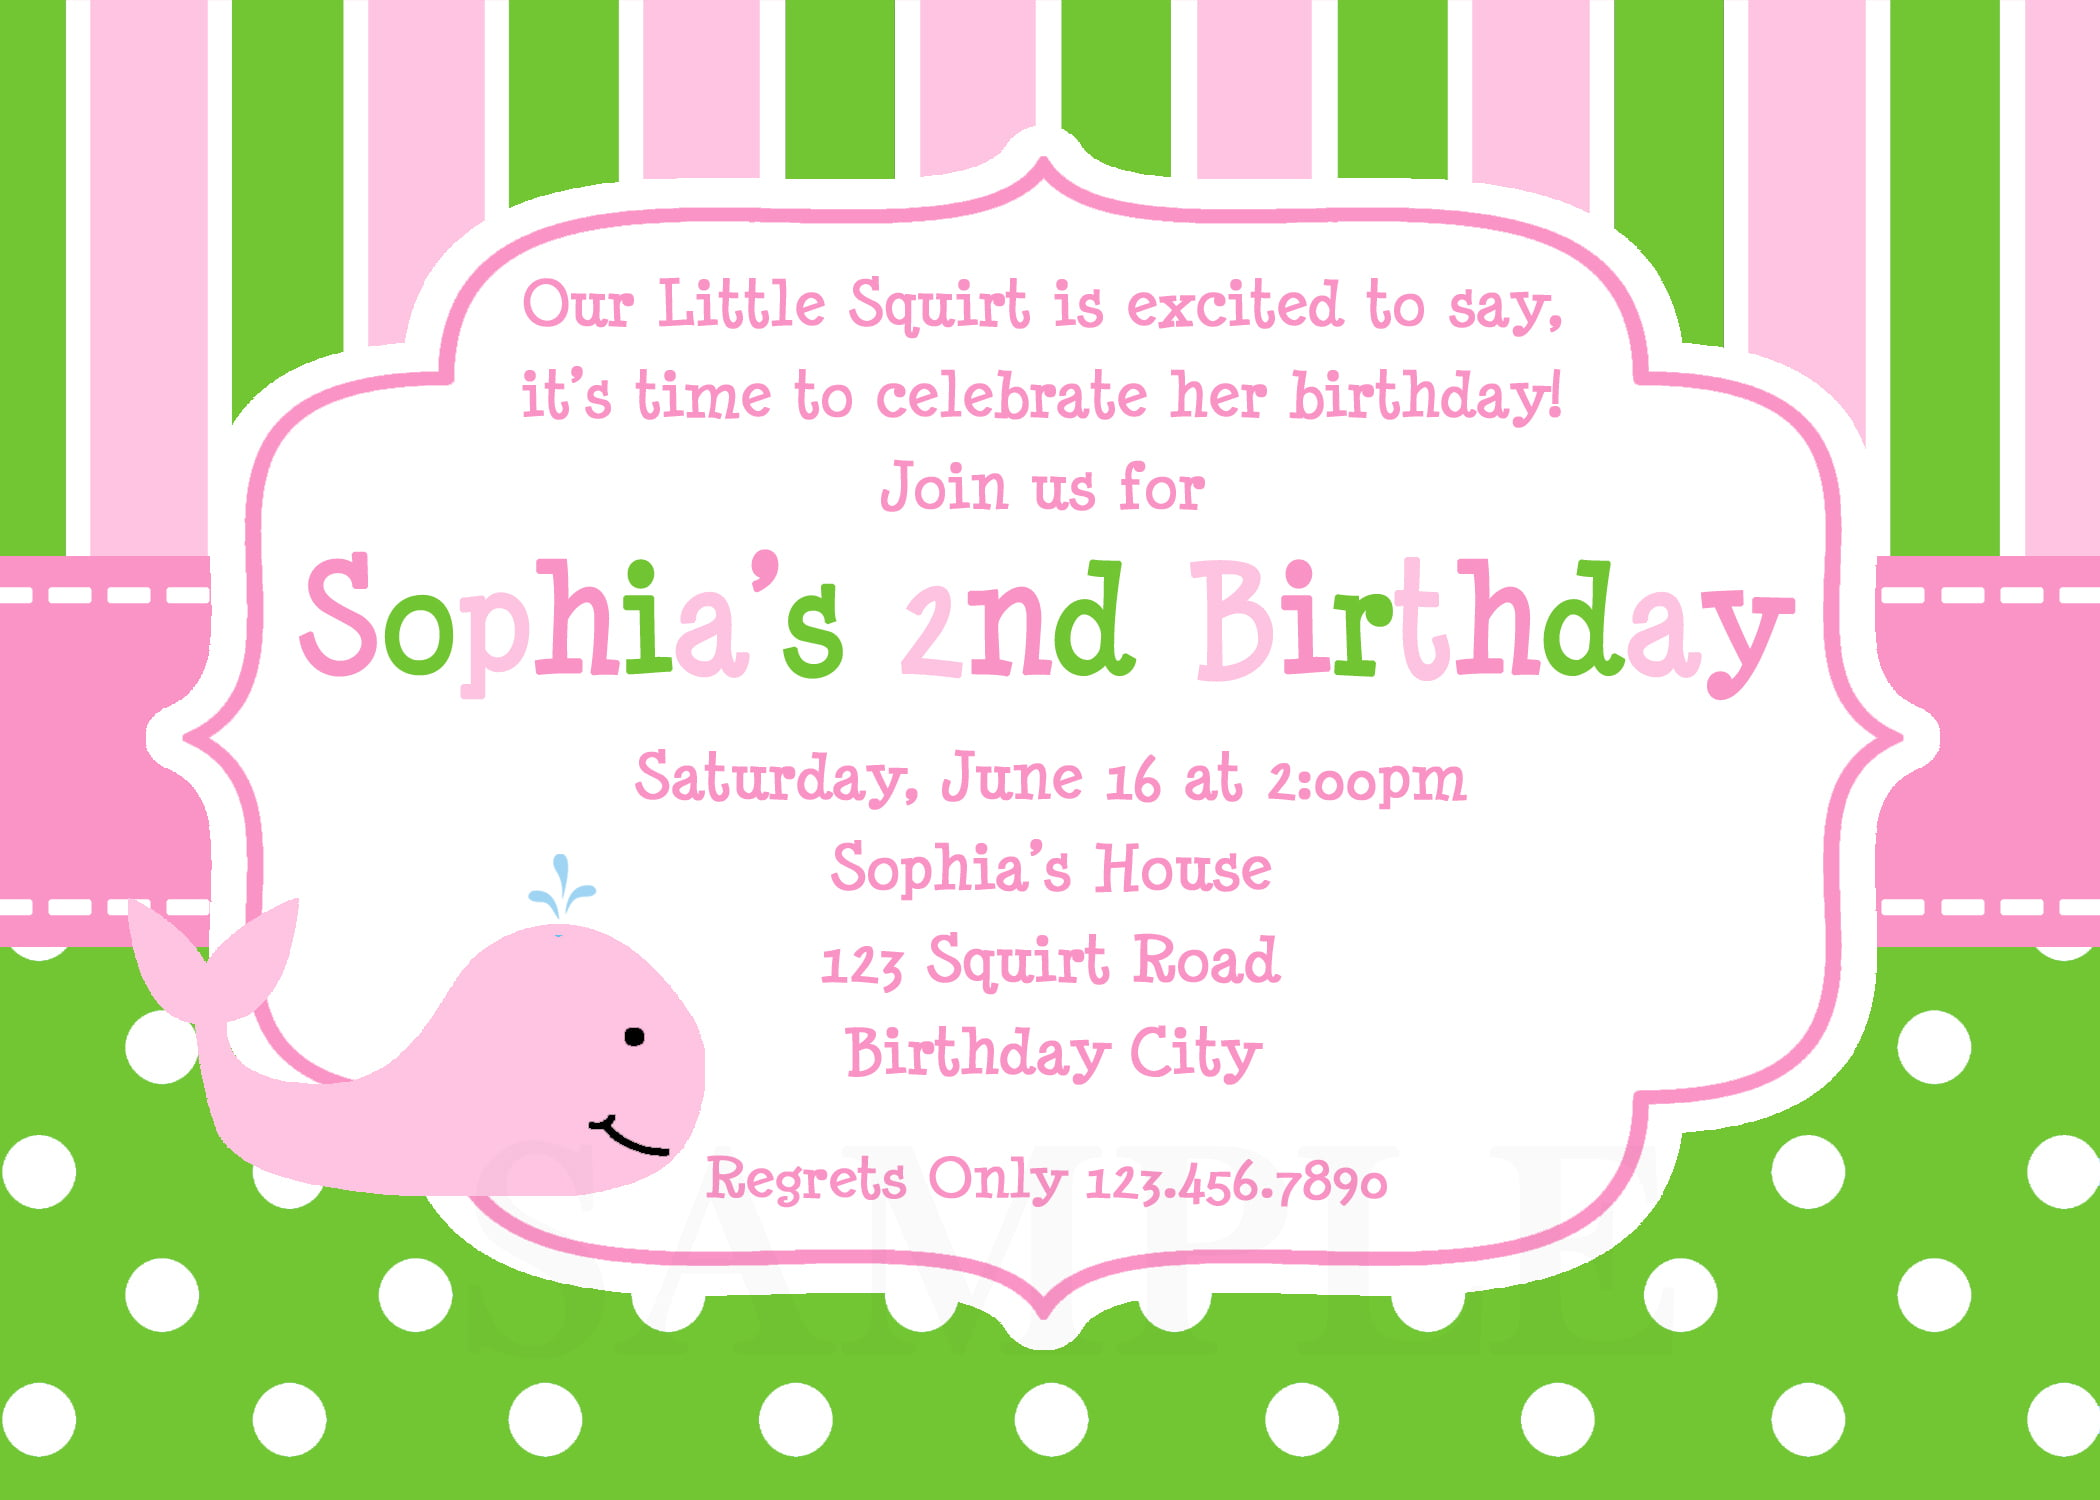 how to design birthday invitations drevio invitations design green pink how to design birthday invitations